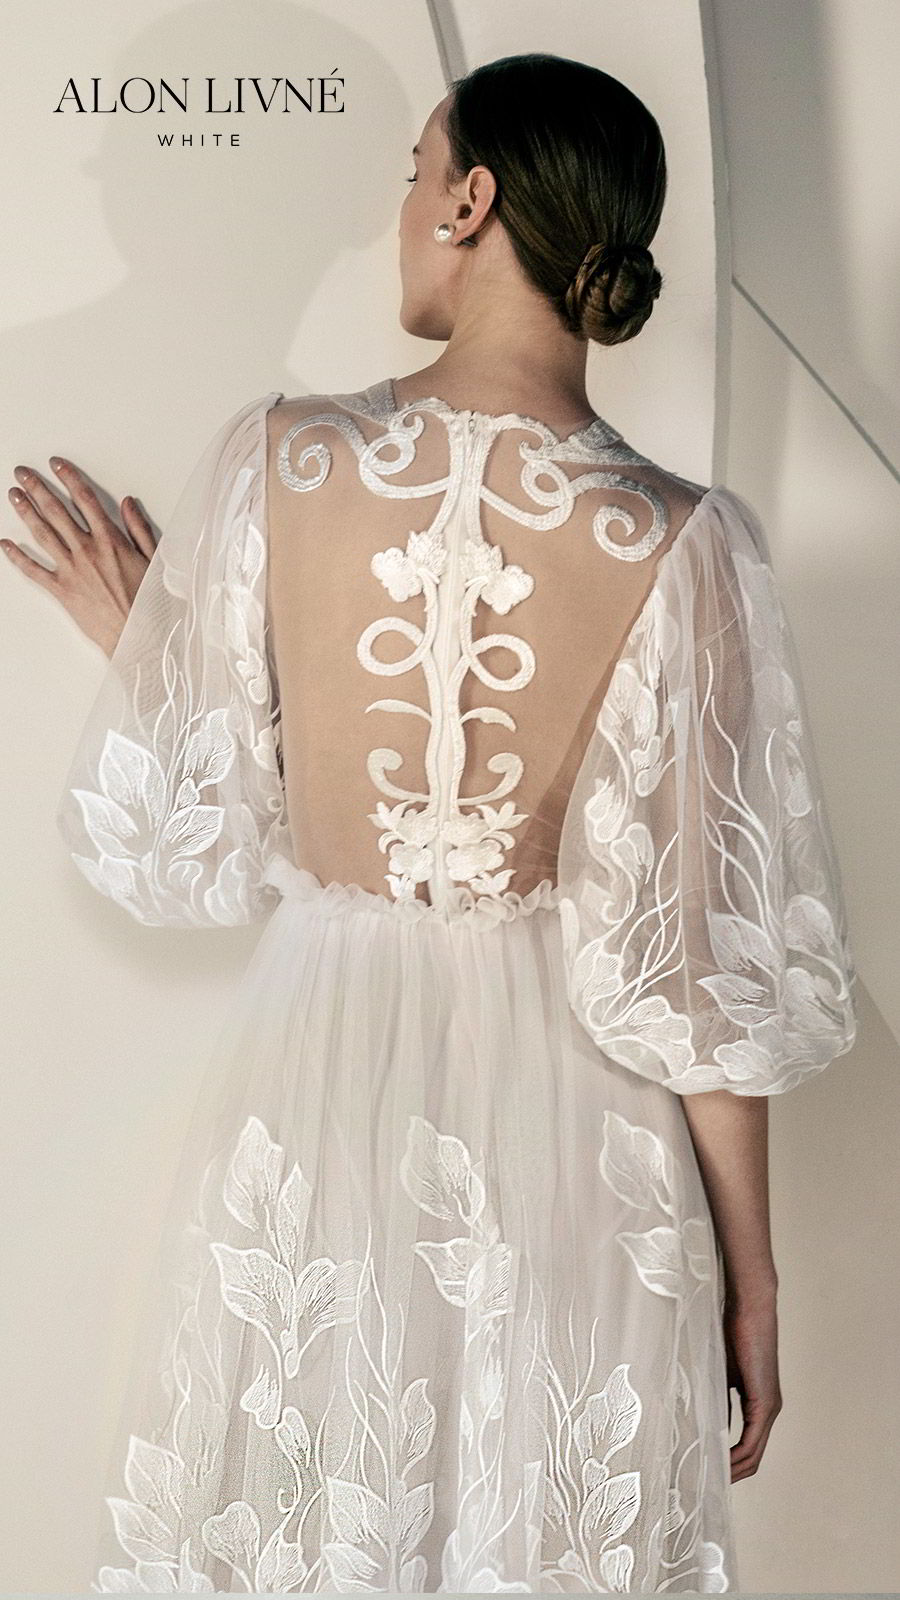 alon livne white spring 2020 bridal 3 quarter illusion puff sleeves jewel neckline sheer bodice fully embellished embroidered lace a line wedidng dress (glory) romantic bohemian zbv